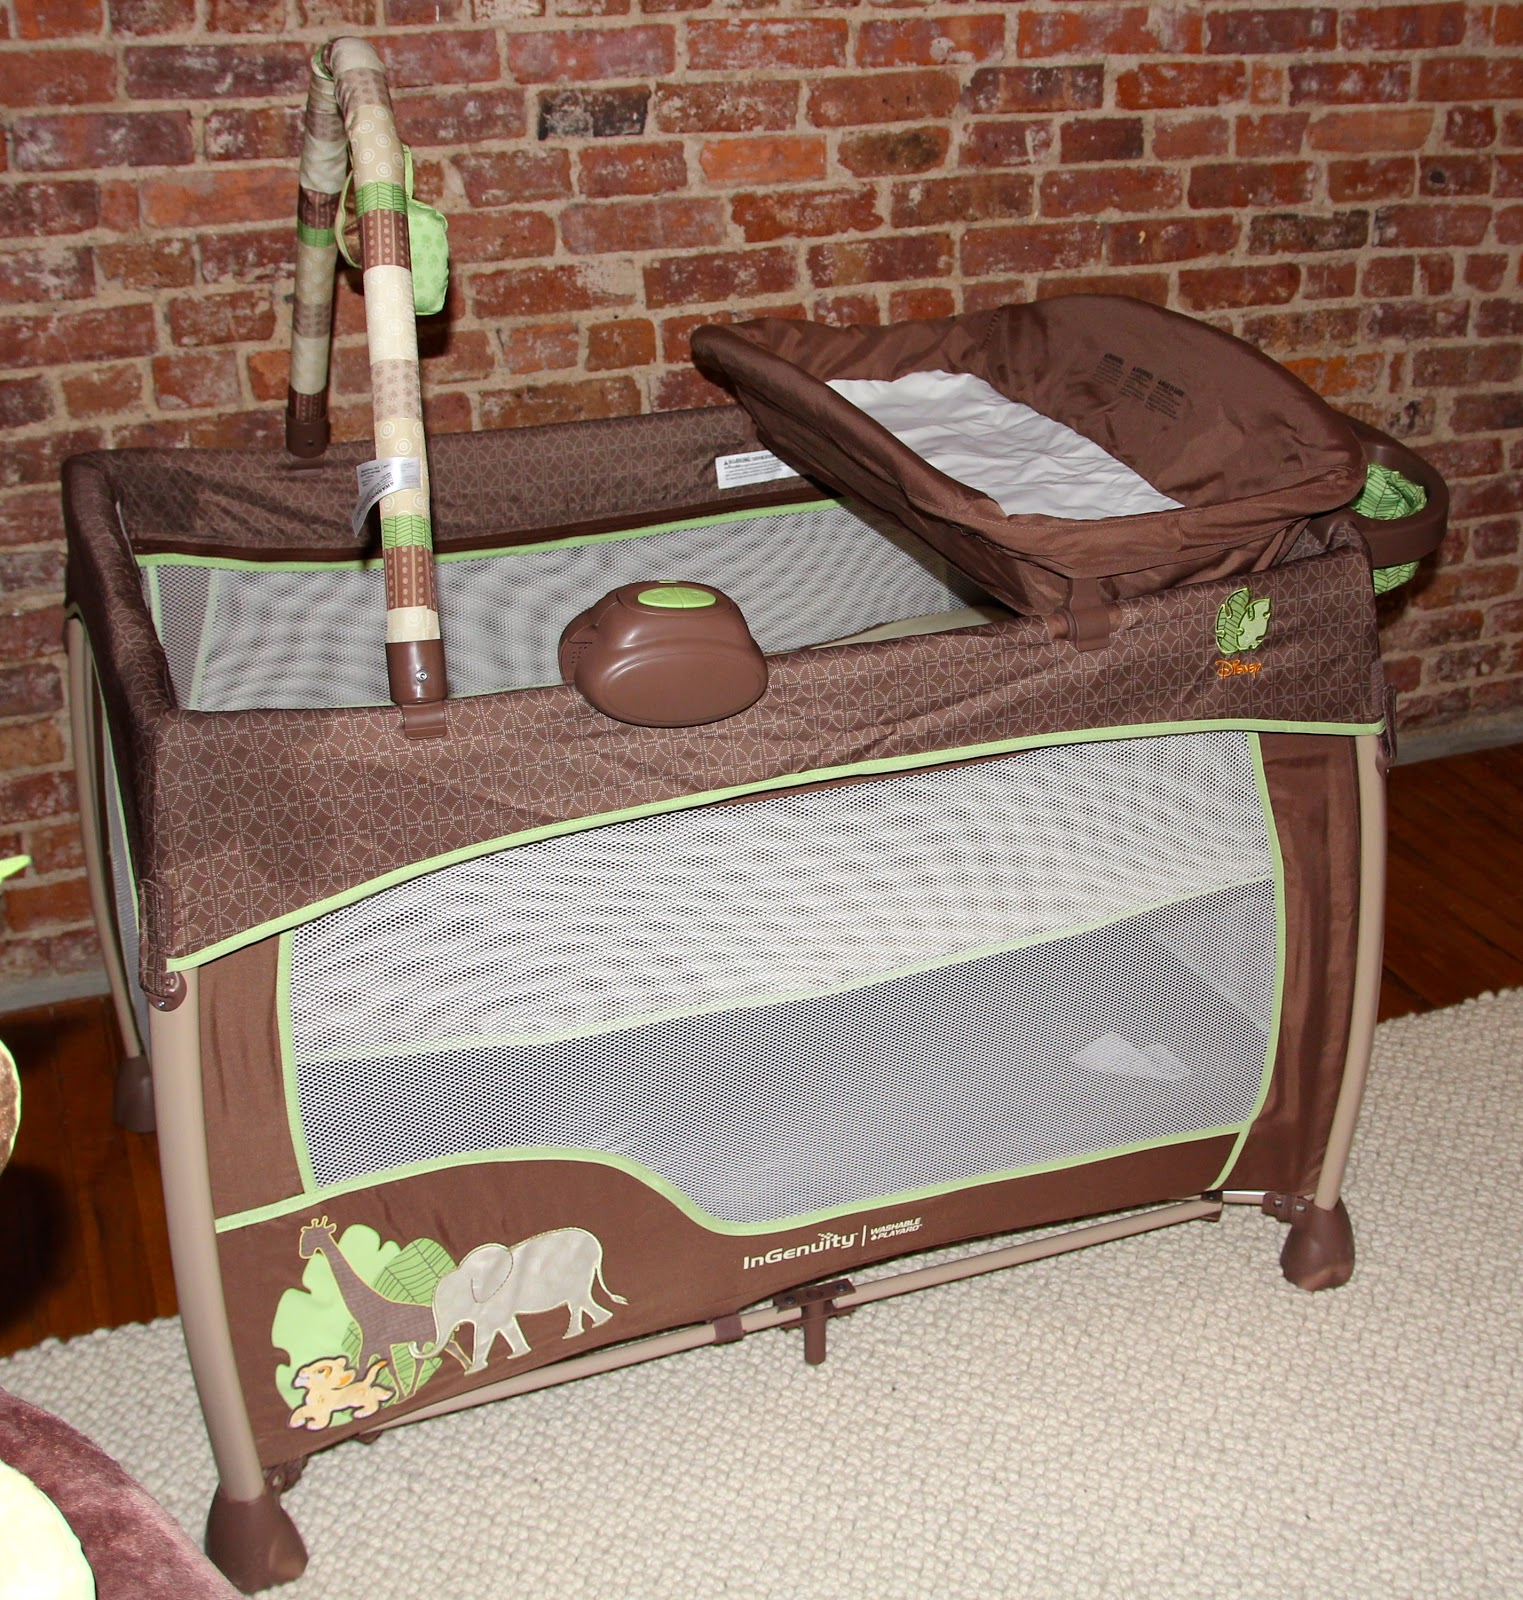 Ingenuity Infant Gear With Style